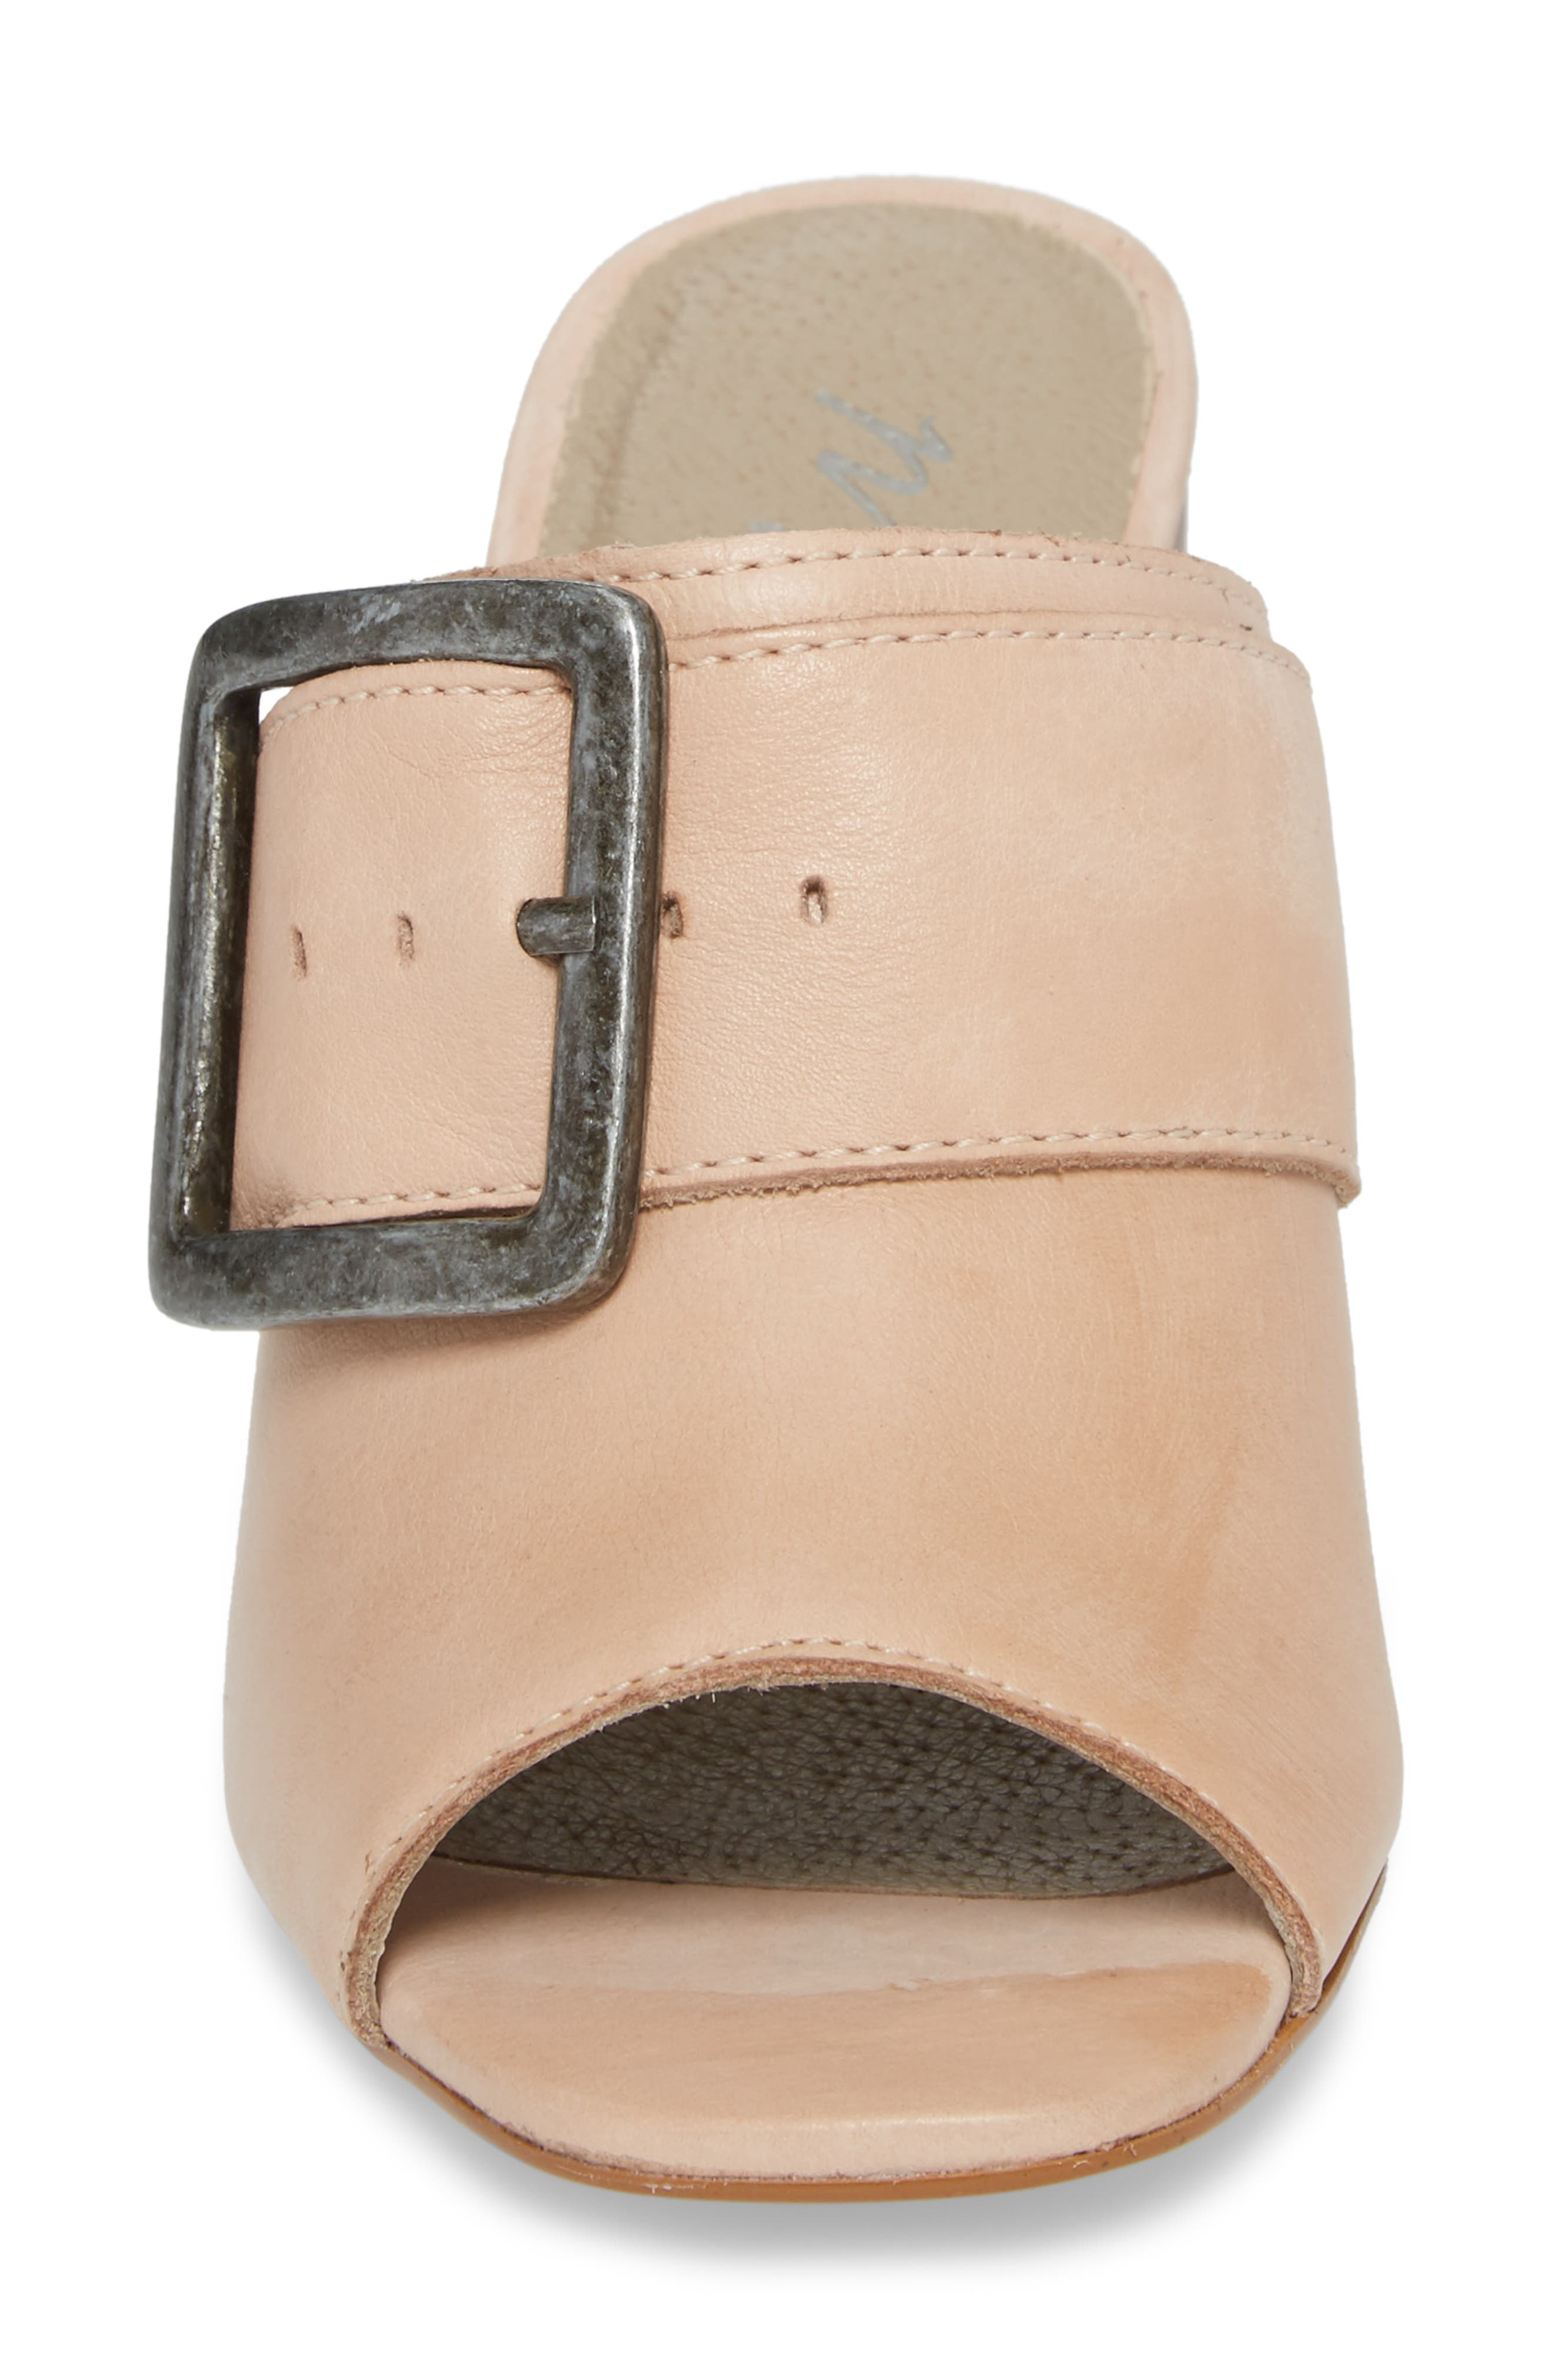 Beatrice Sandal,                             Alternate thumbnail 4, color,                             Nude Leather